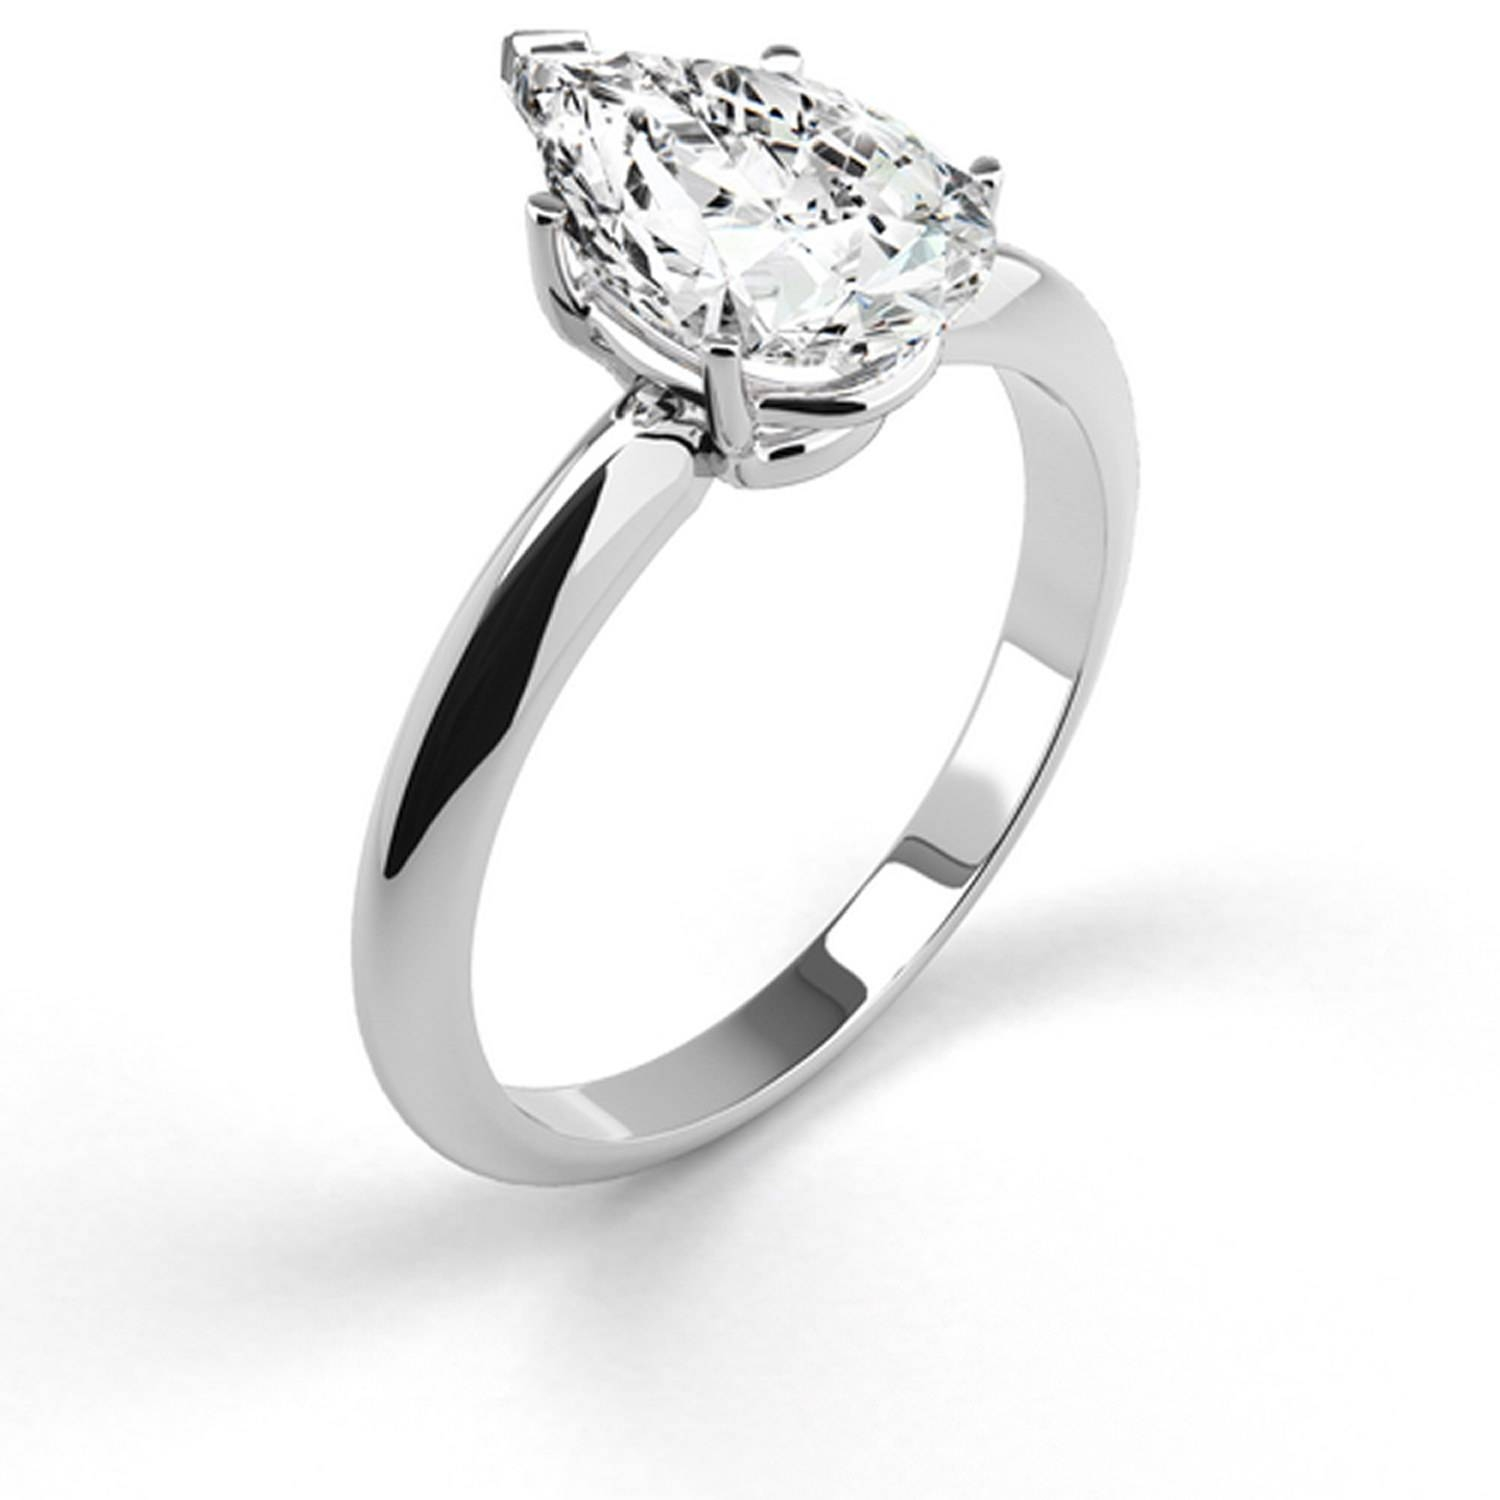 D/si1 Diamond Engagement Ring 1.5 Carat Pear Shaped 14K White Gold Inside  (View 10 of 15)